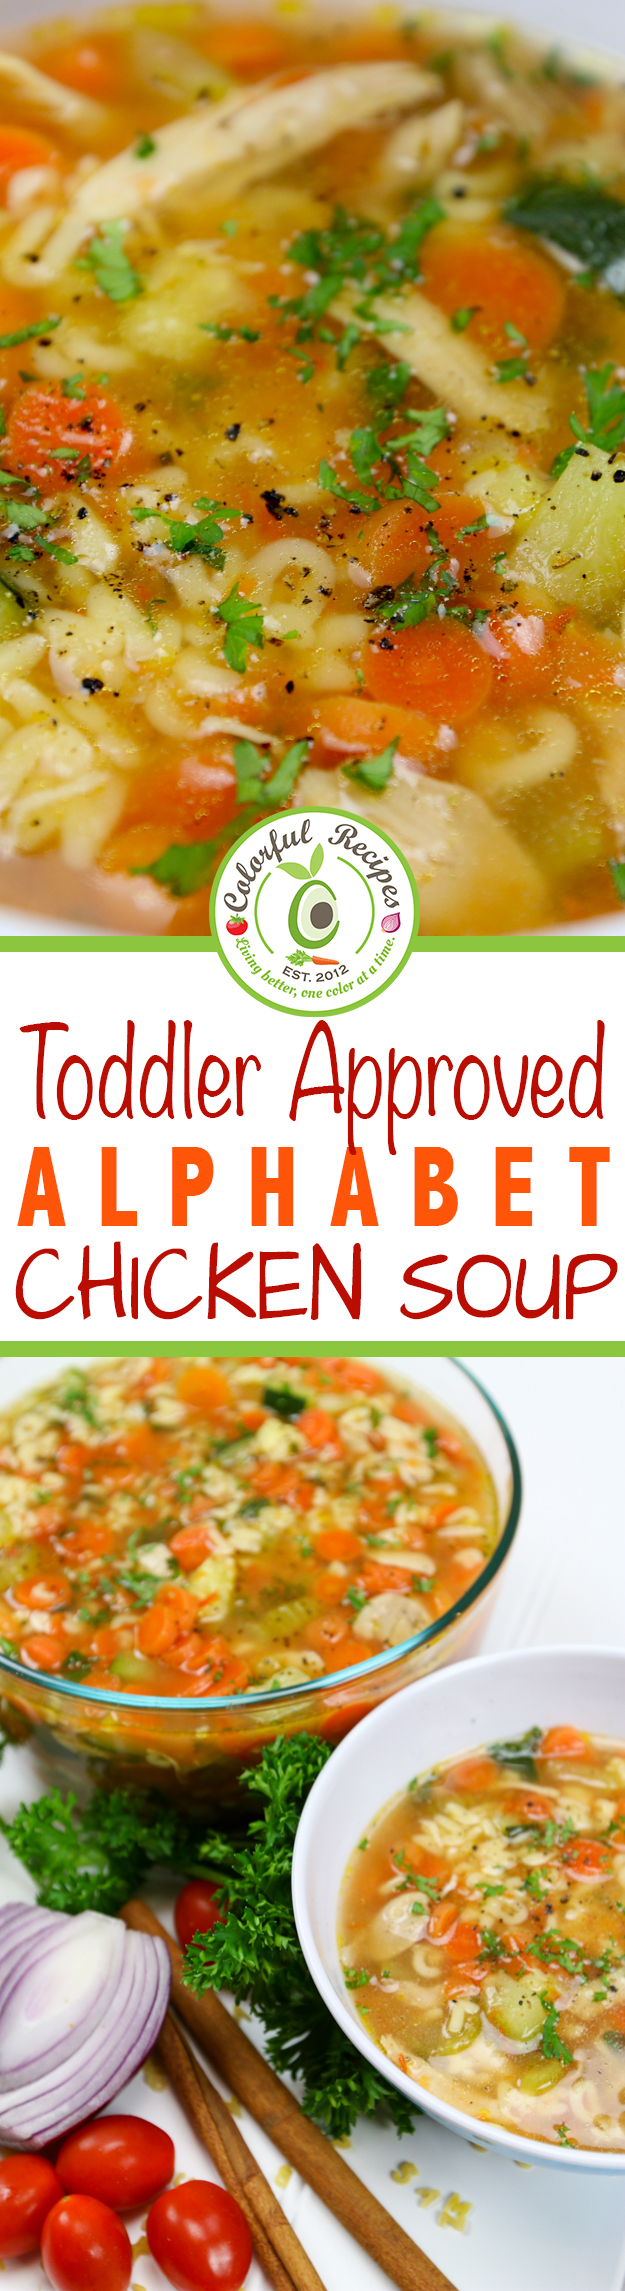 Toddler Approved Alphabet Chicken Soup